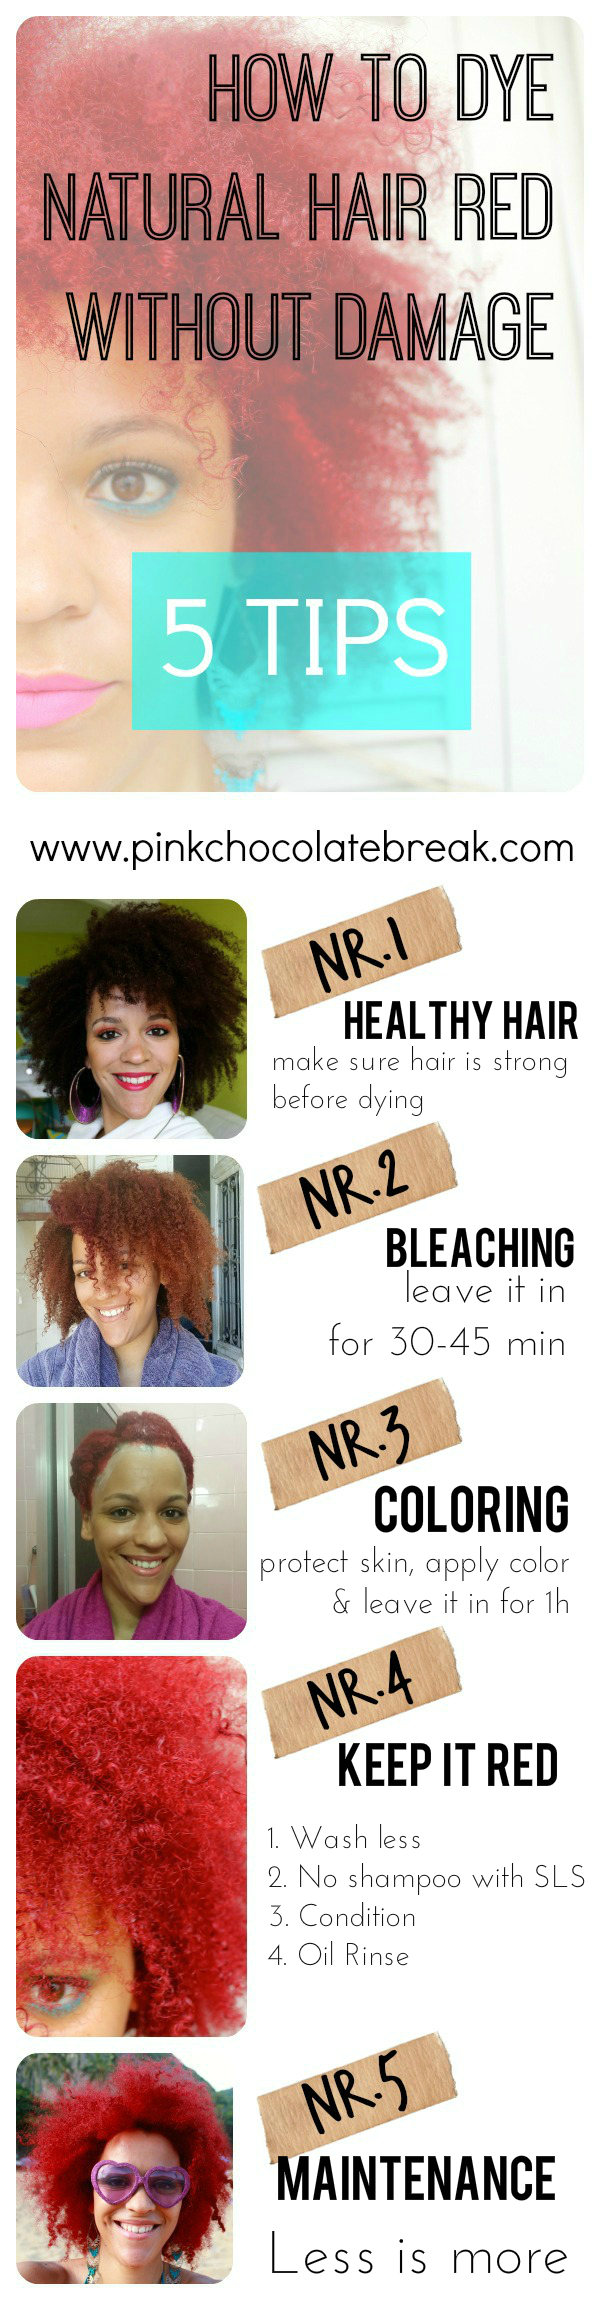 How to color natural hair red without damage pinkchocolatebreak